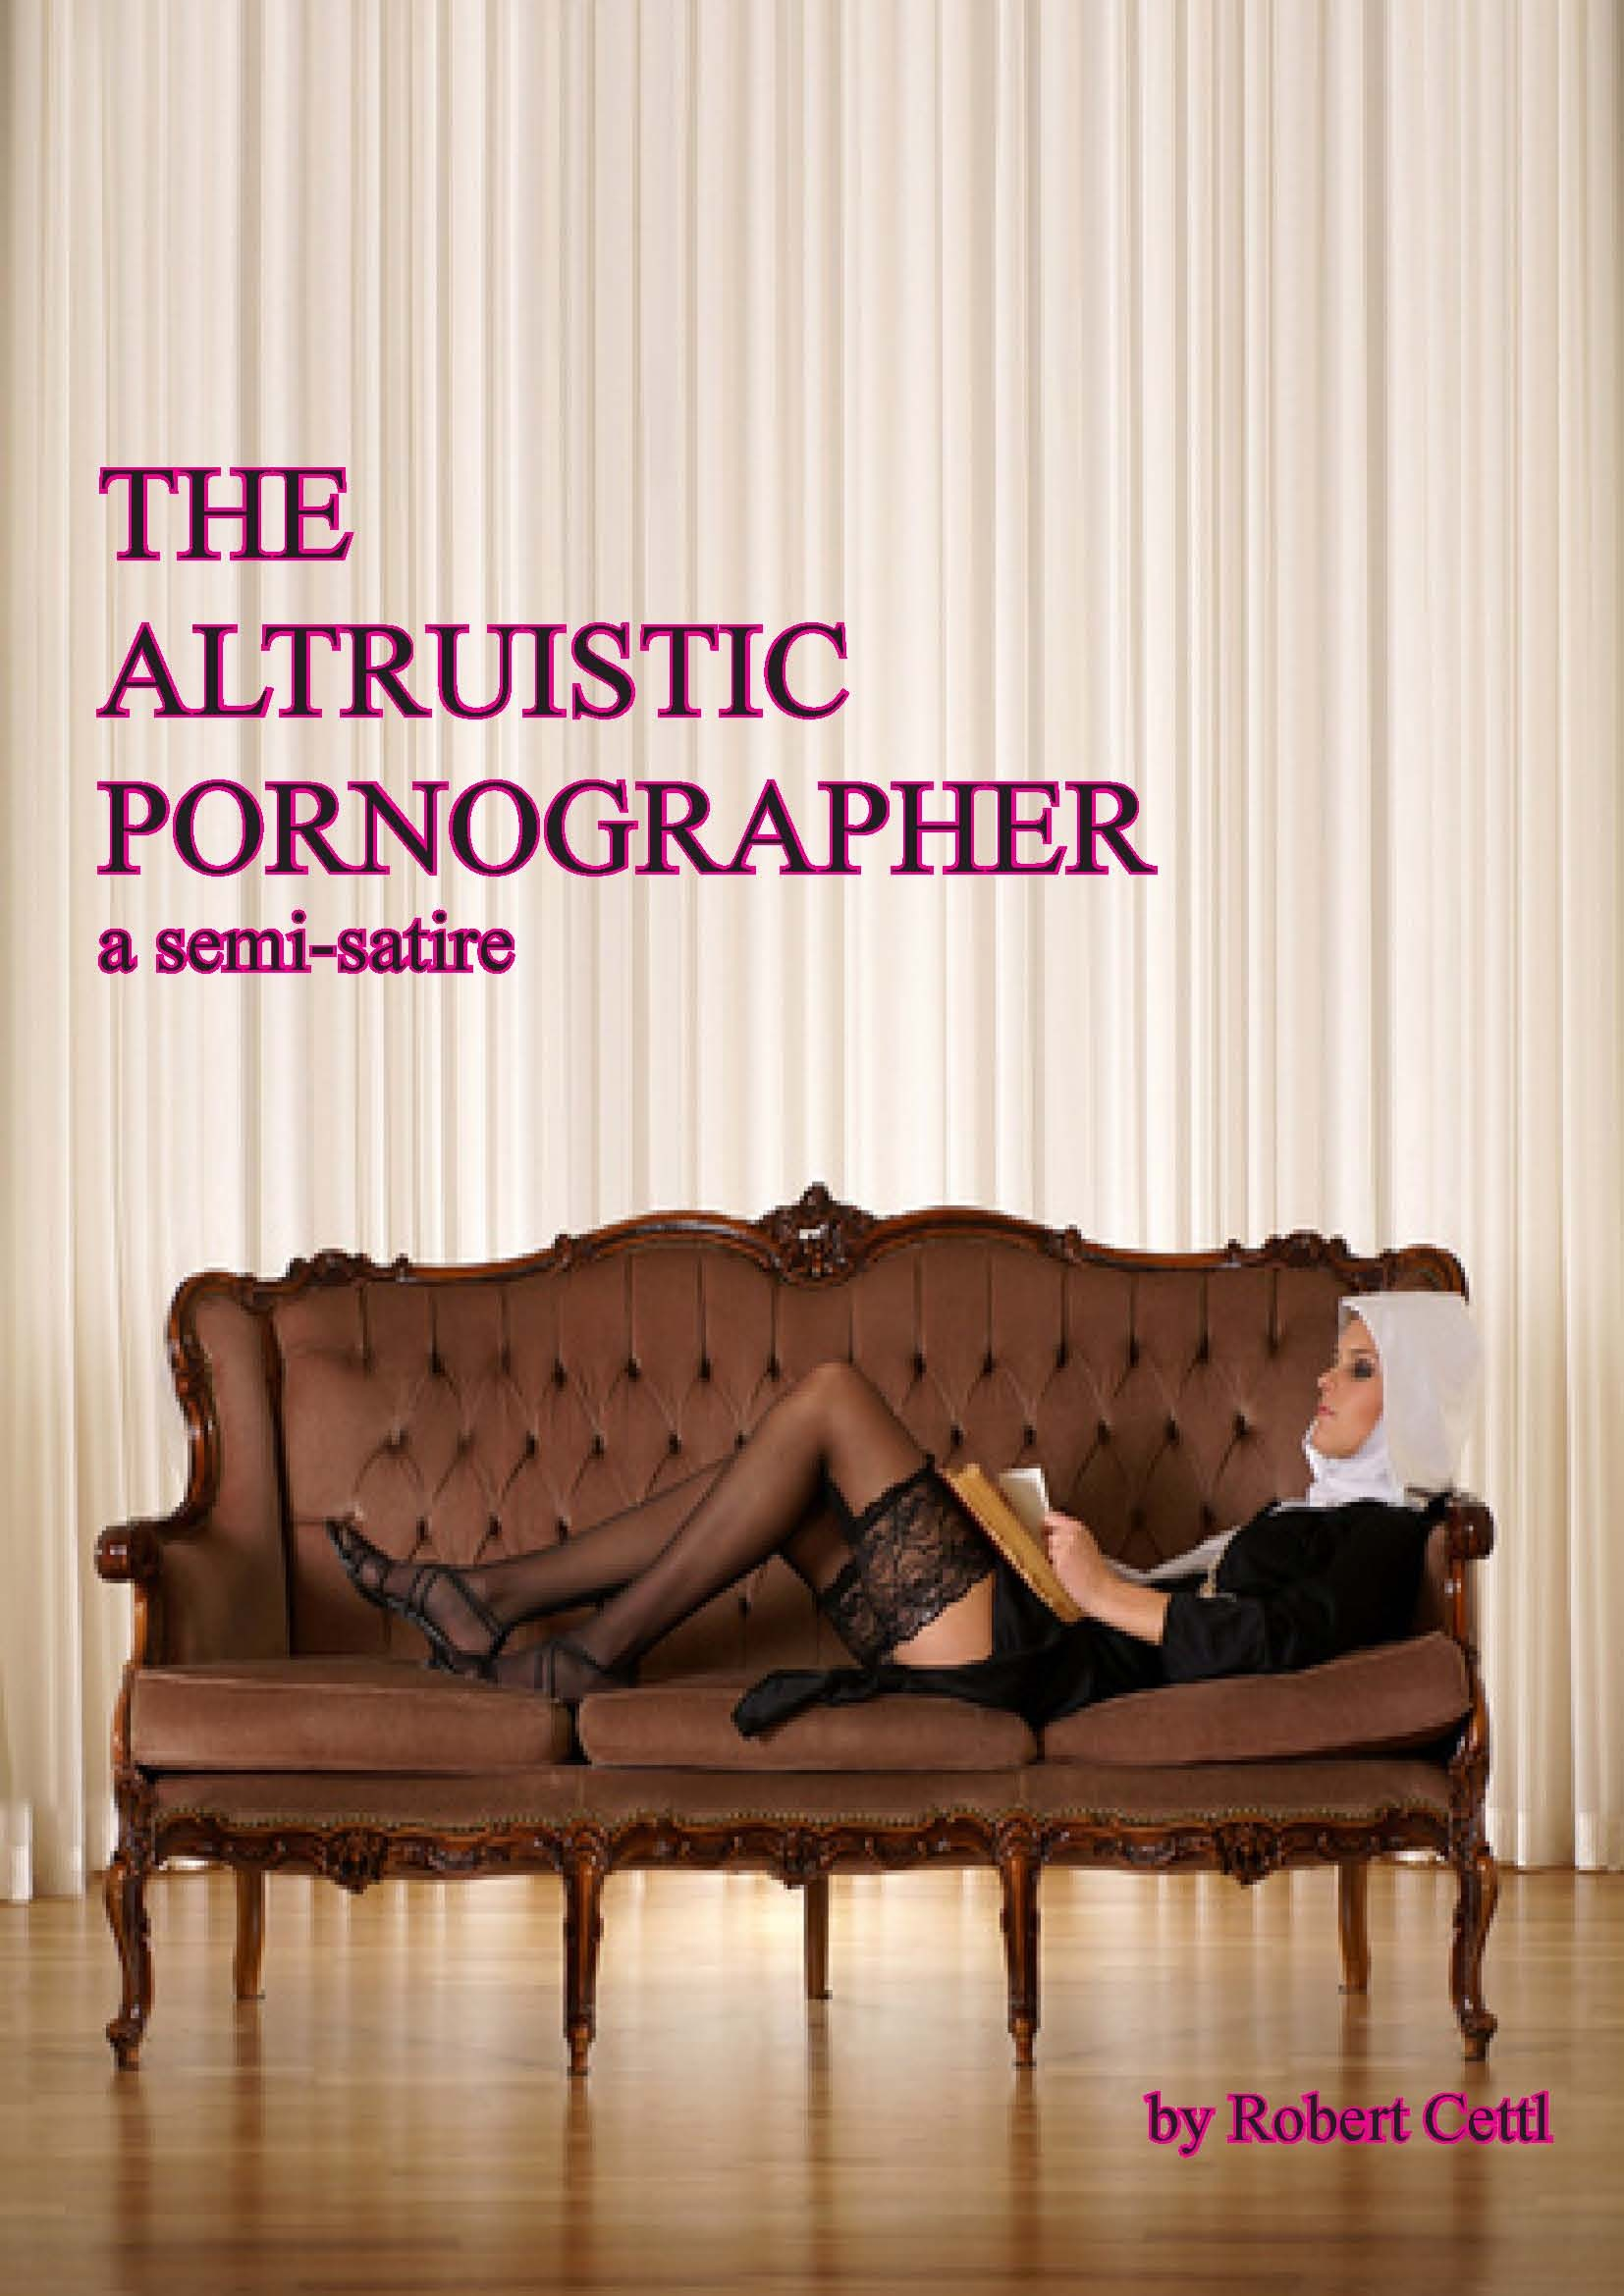 The Altruistic Pornographer